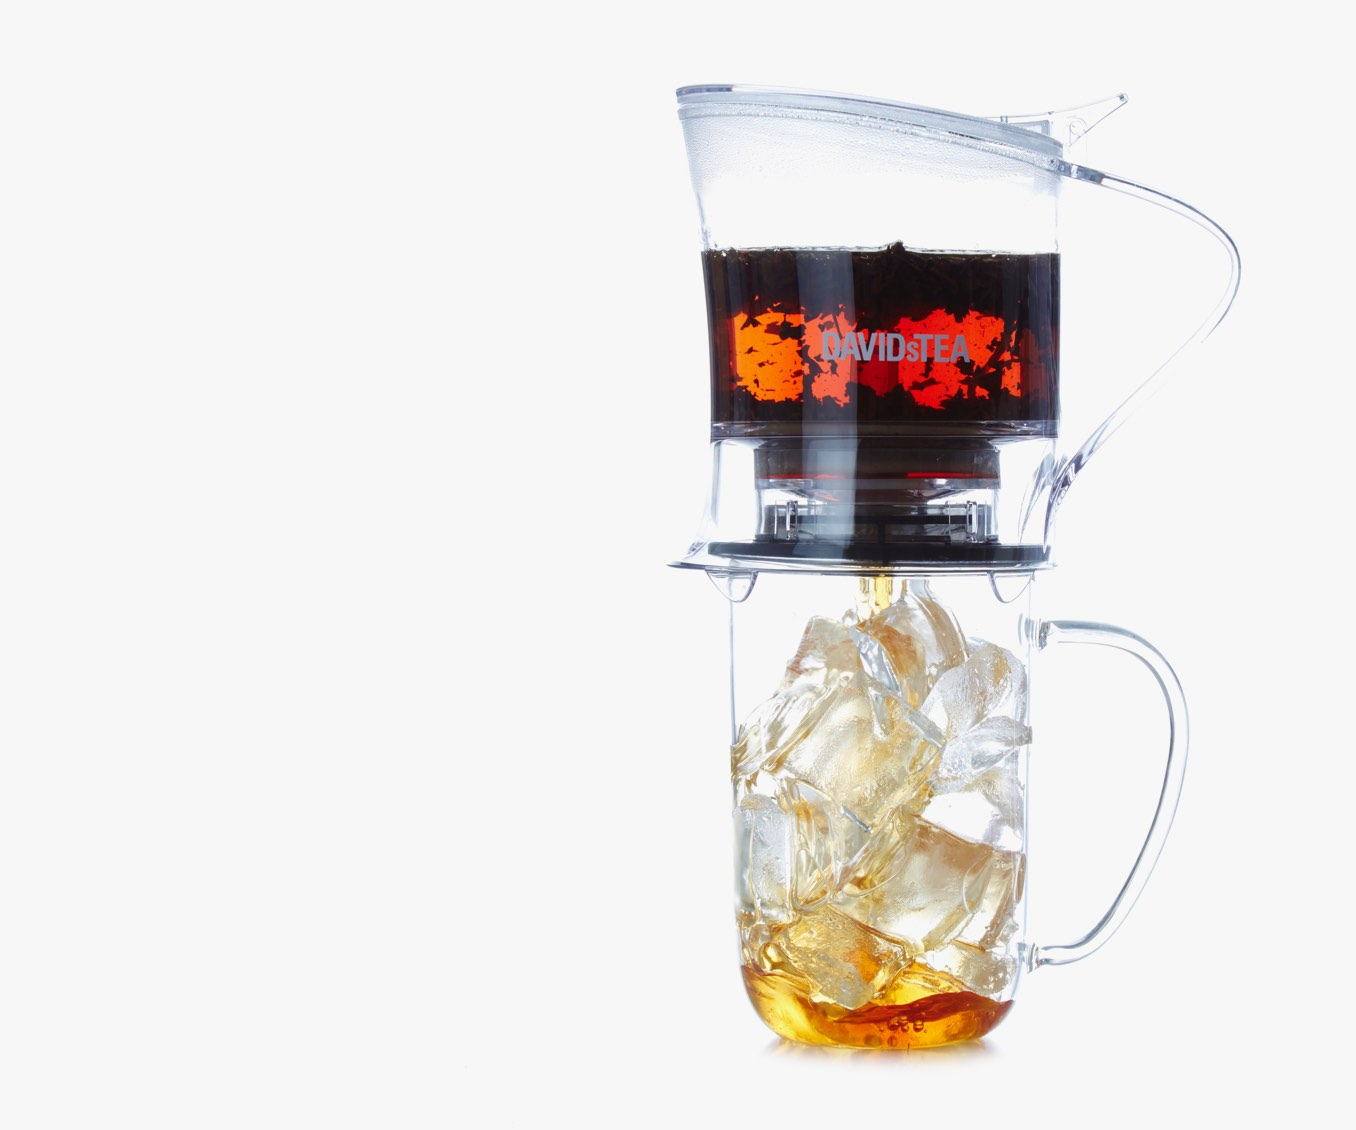 Clear 16 oz tea maker dispensing tea into clear 16 oz glass mug filled with ice.